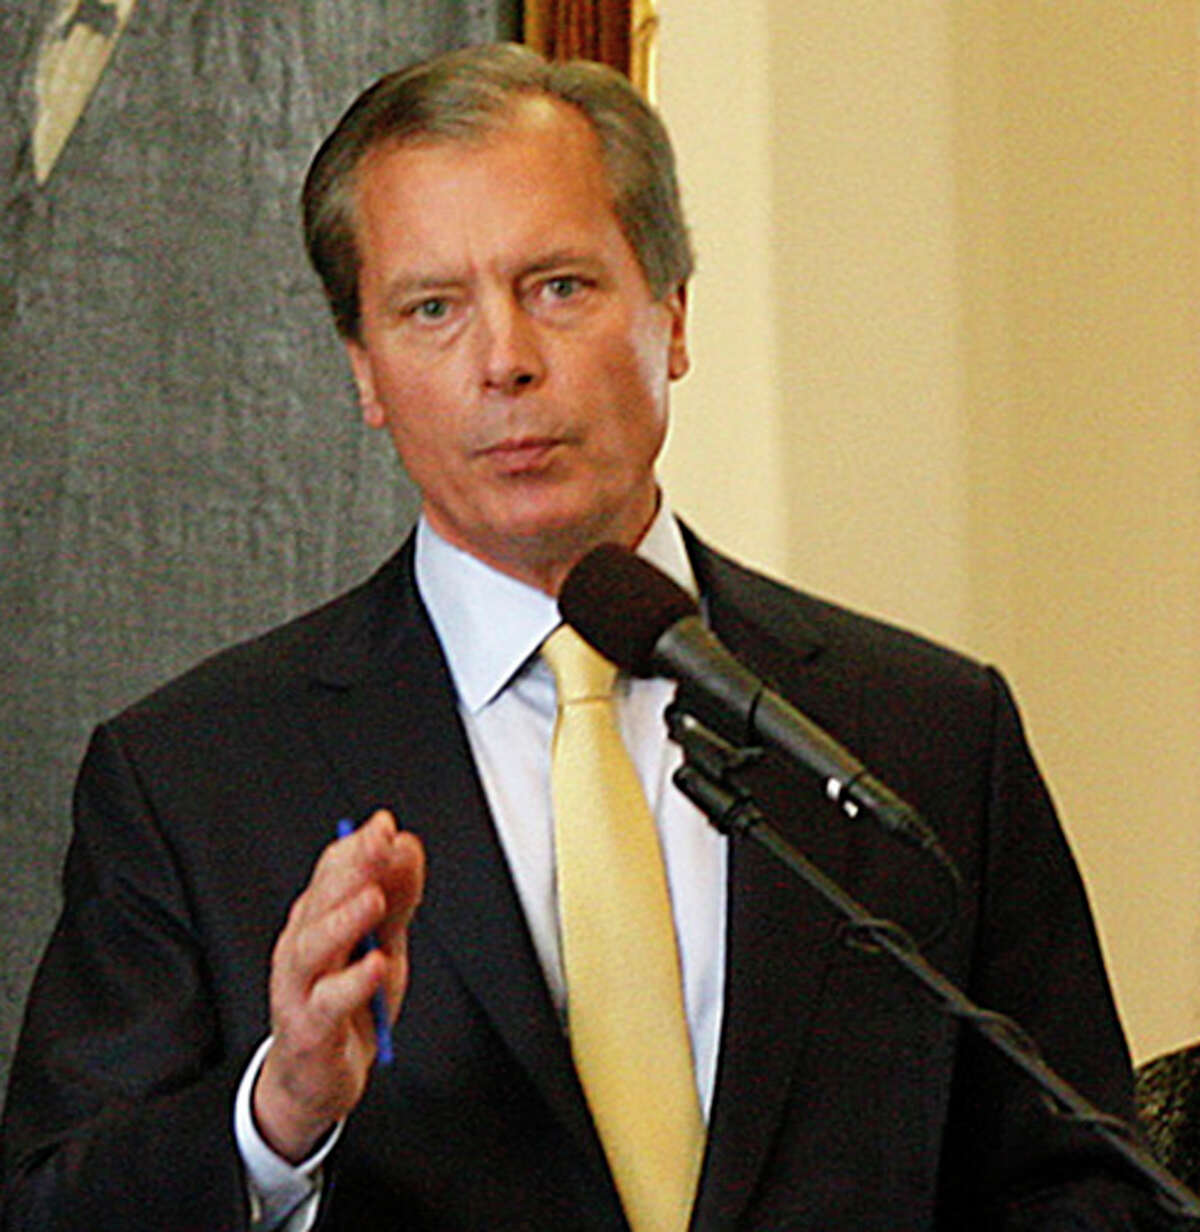 Lt. Gov. David Dewhurst, seen on Jan. 24, 2011, is expected by midweek to make his official announcement that he'll be seeking the Senate seat held by Kay Bailey Hutchison.